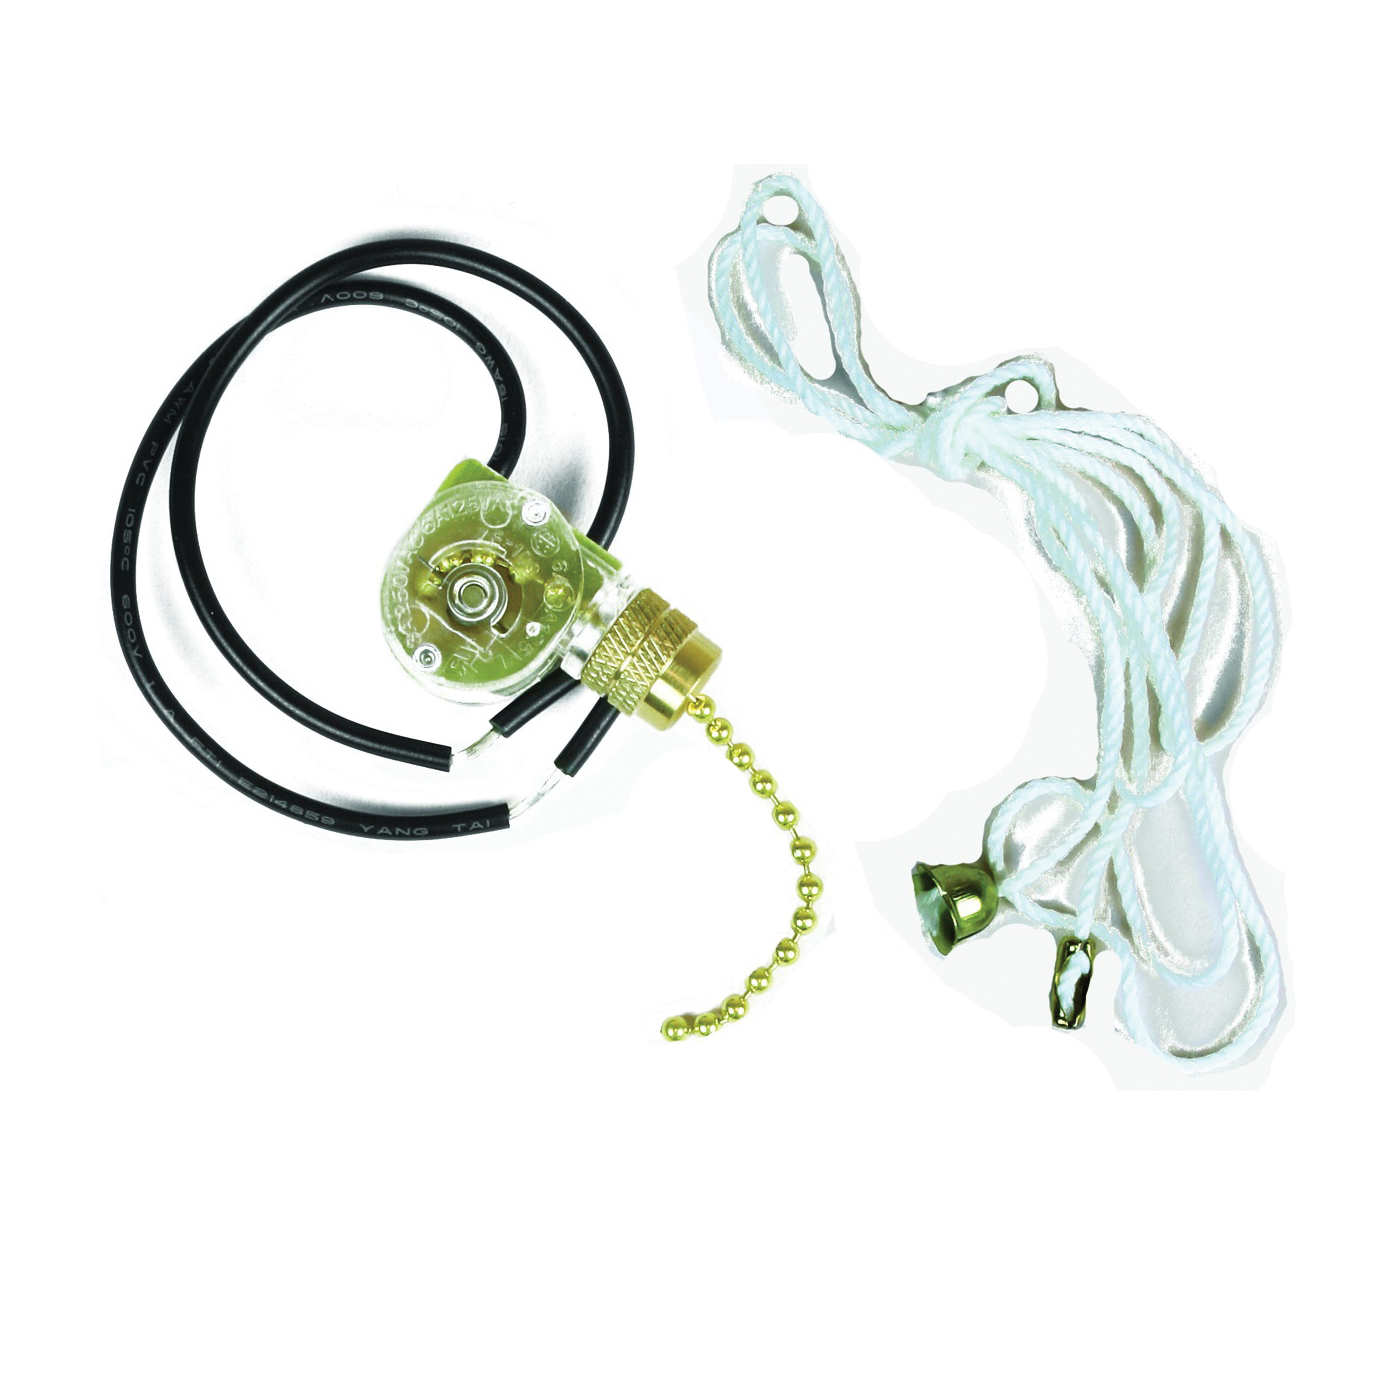 Picture of Jandorf 60304 Pull Chain Switch, 250 V, 3 A, Brass